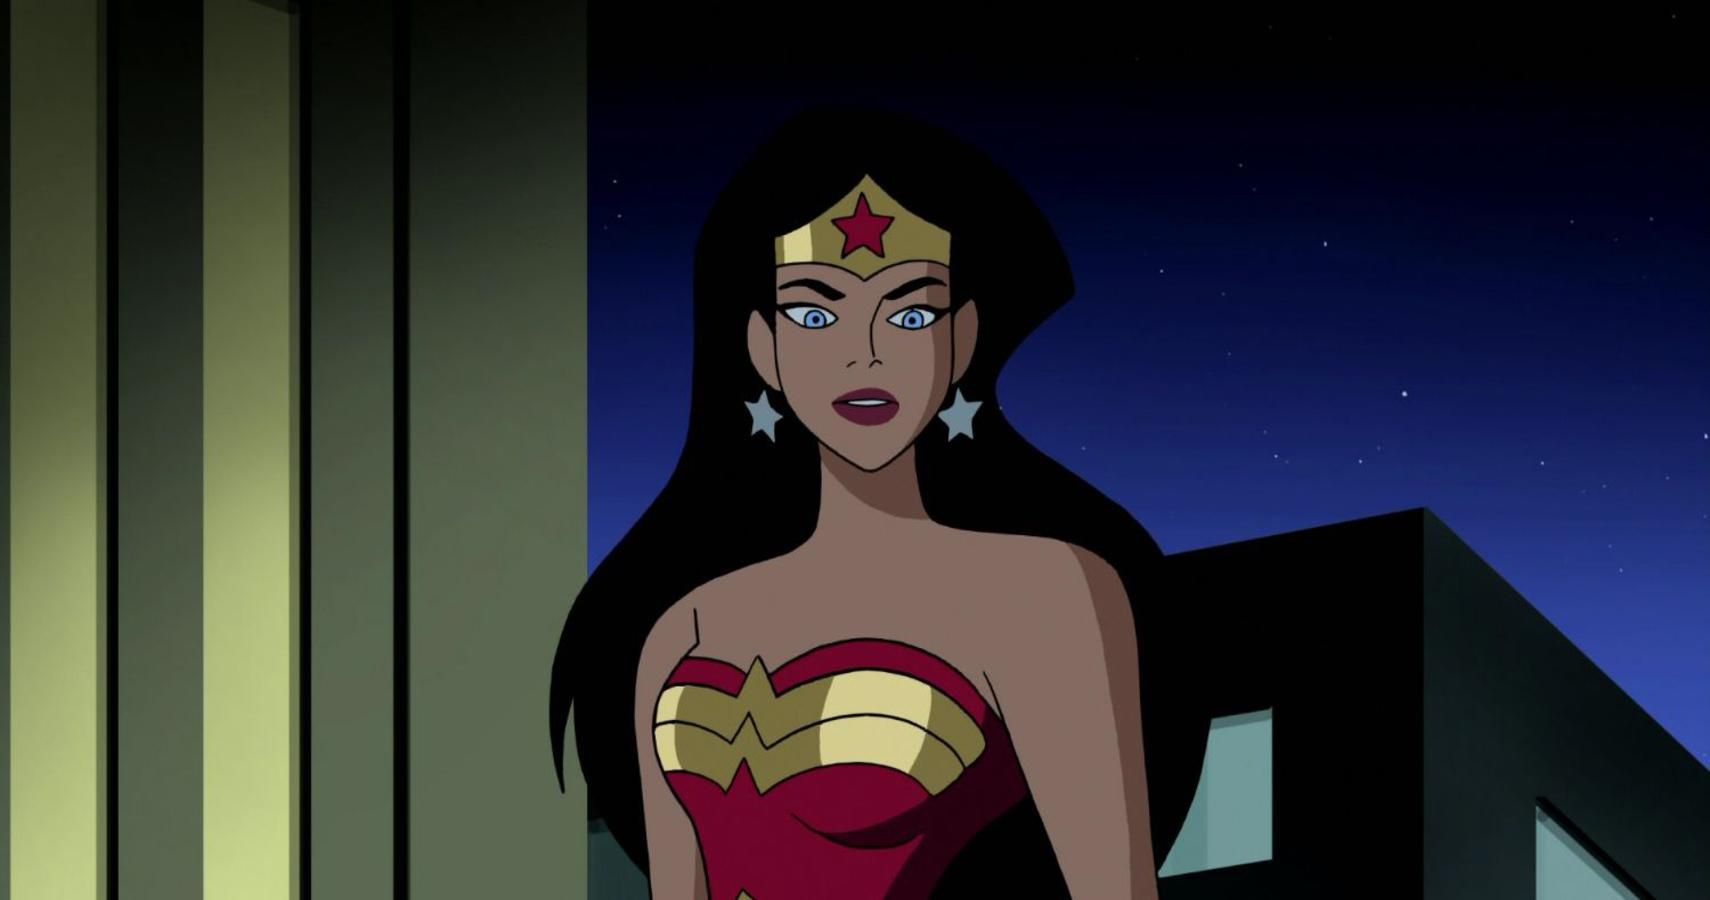 https://static3.cbrimages.com/wordpress/wp-content/uploads/2020/04/Wonder-Woman-DCAU-banner-1.jpg